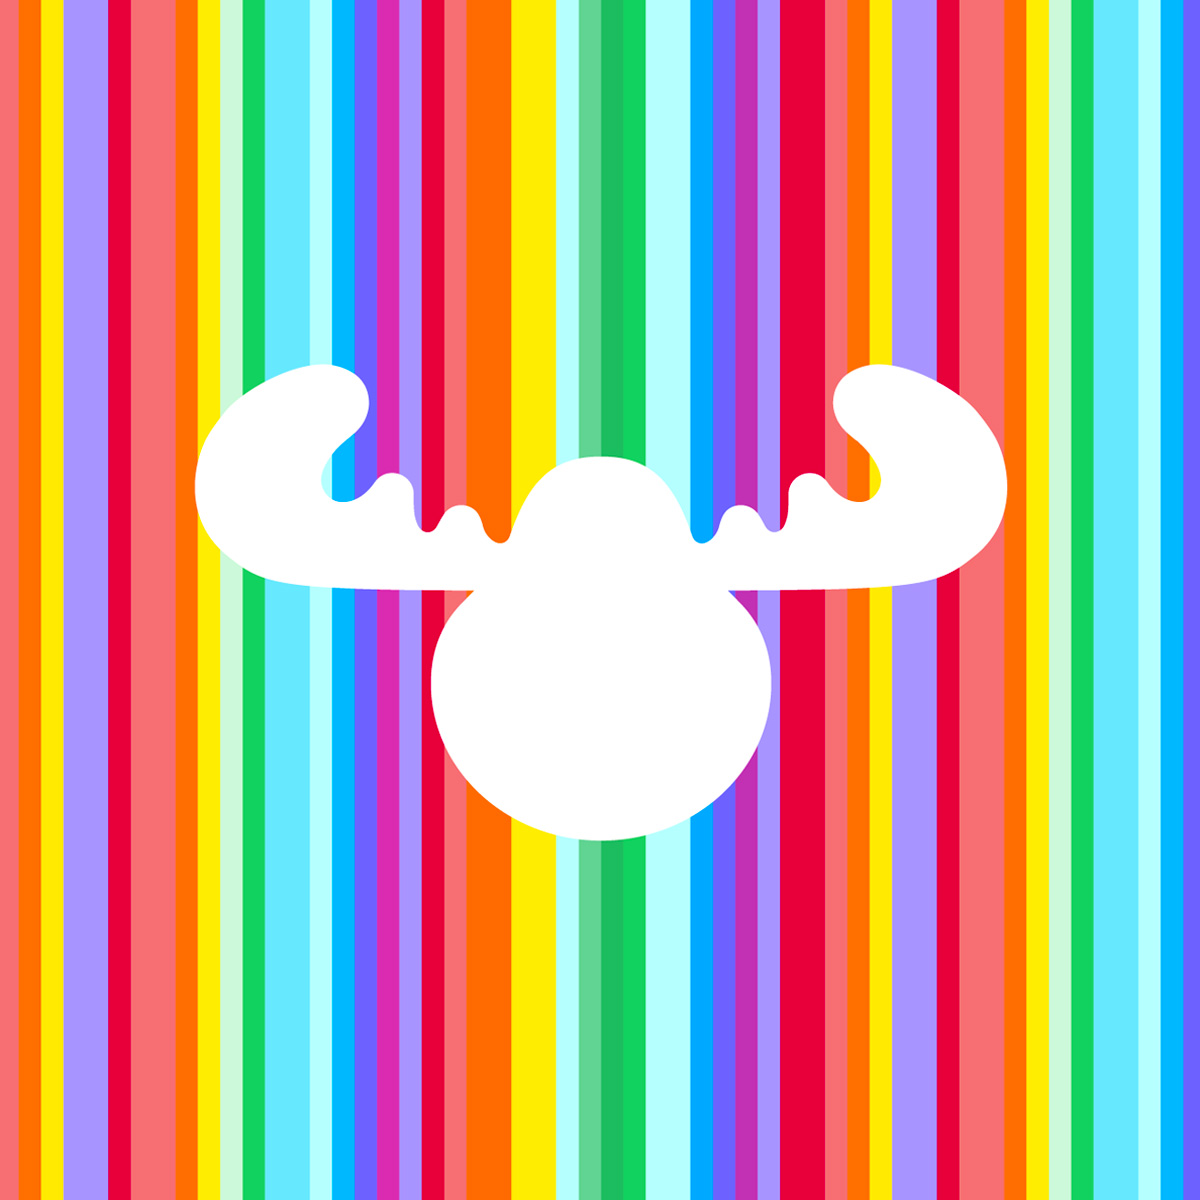 Moose Toys Brand Mark - on coloured stripe brand visual asset background